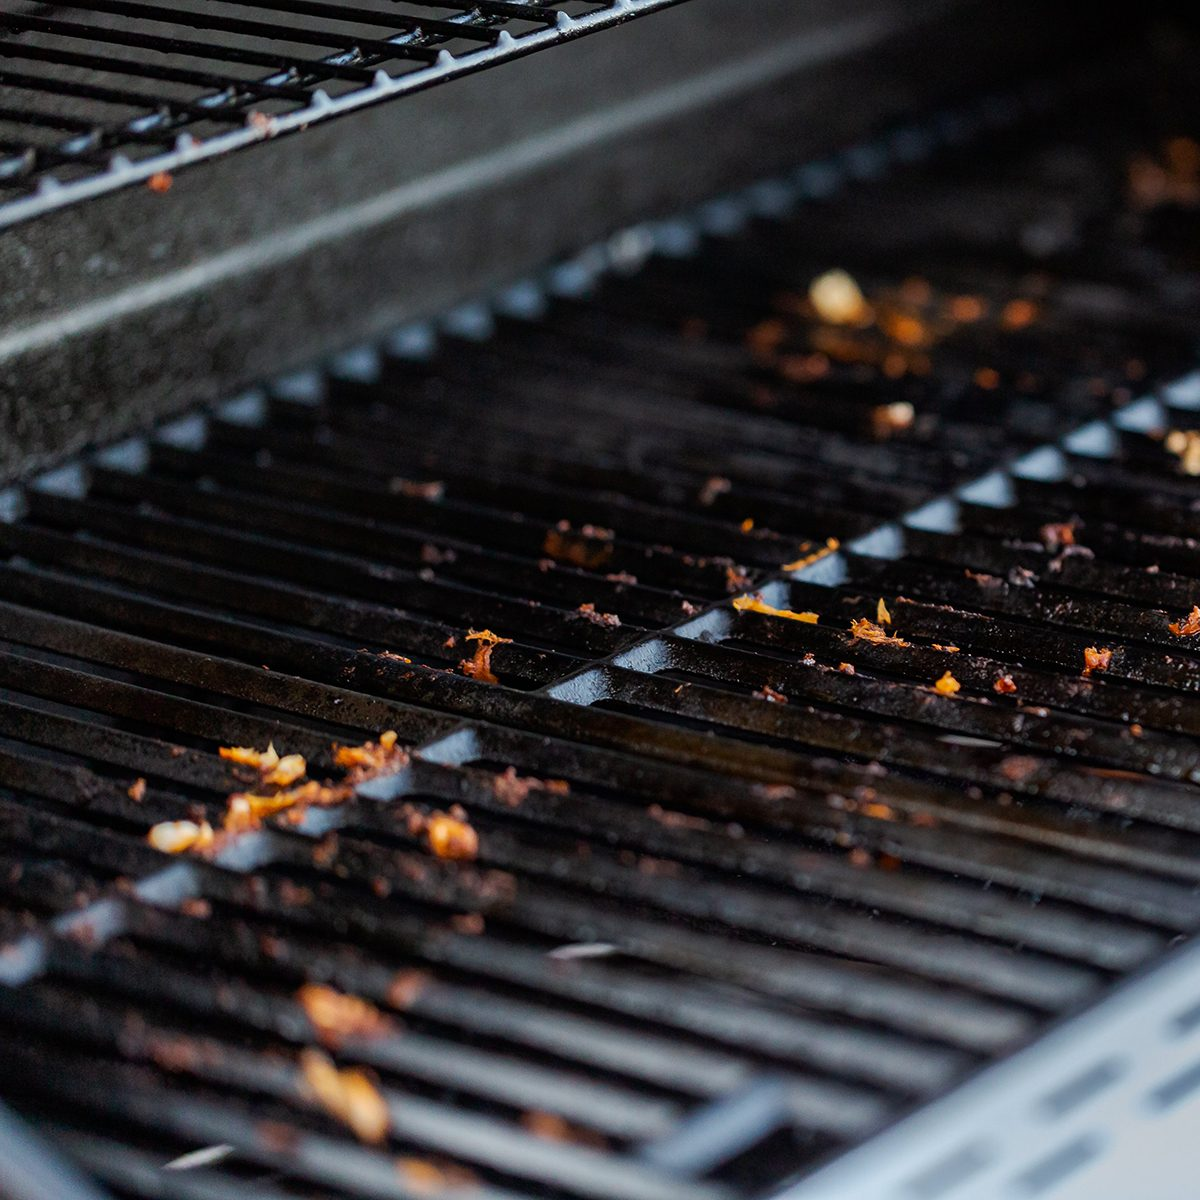 Leveled grill